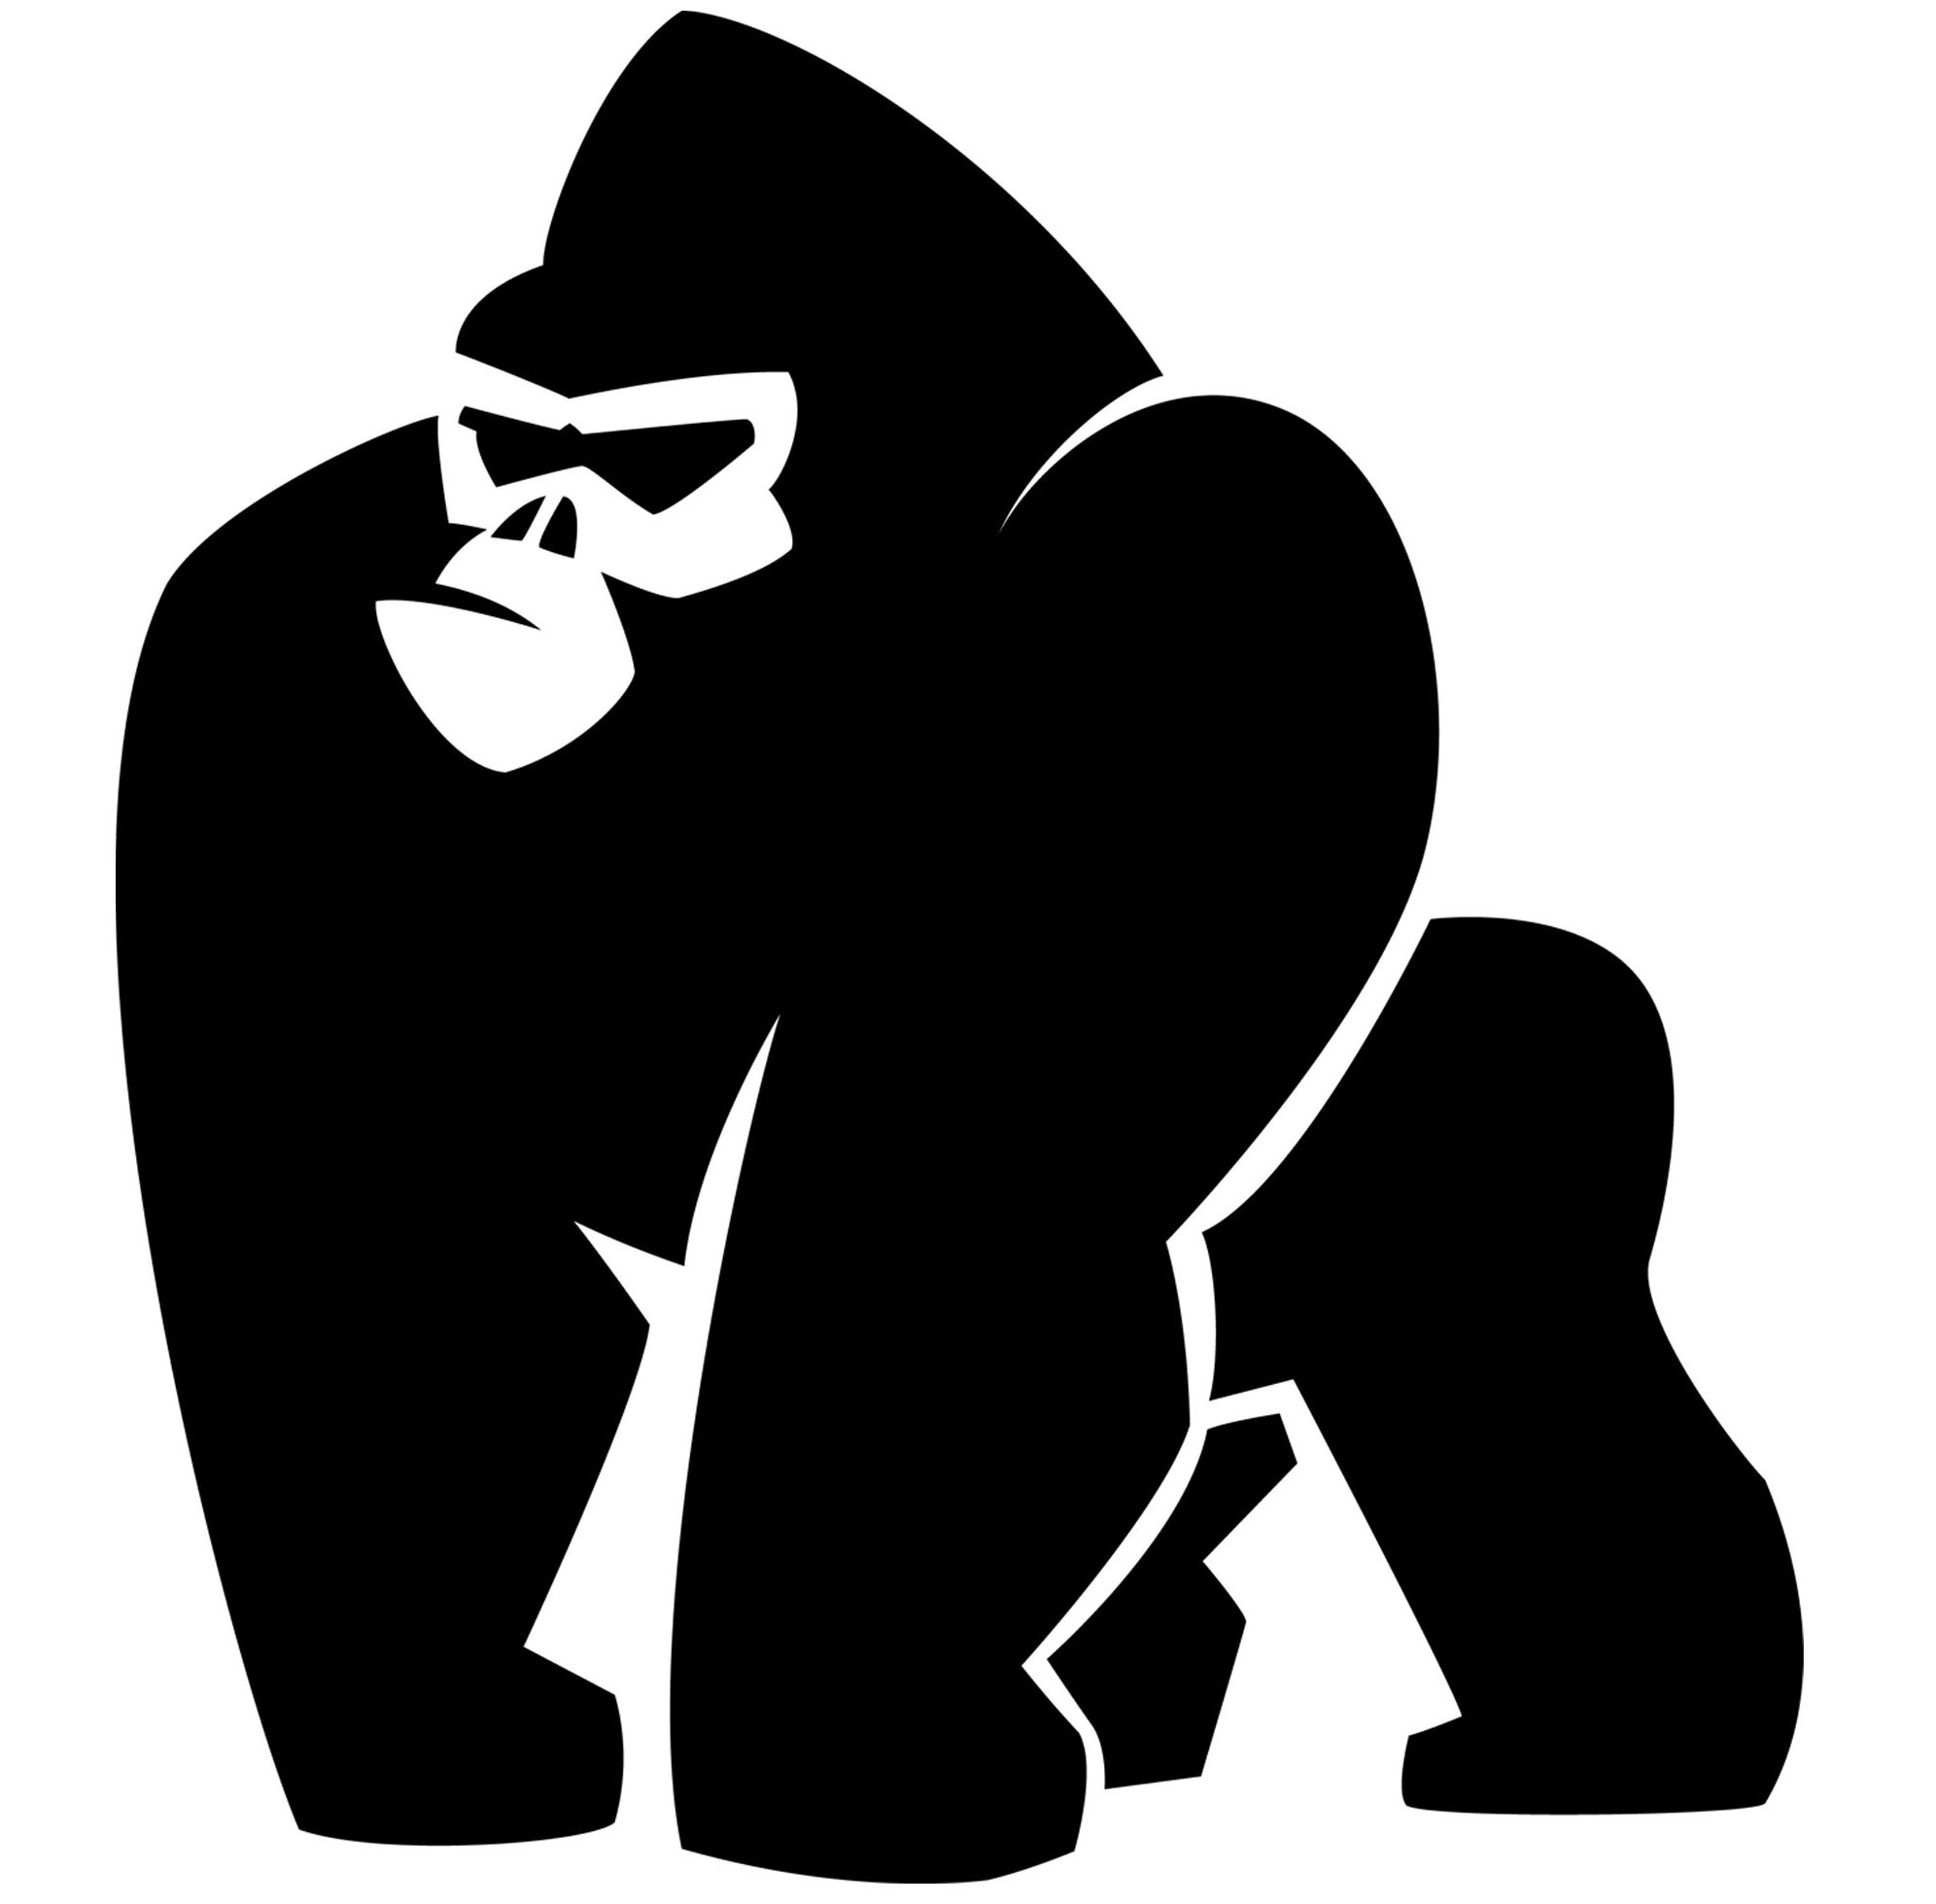 Chubby gorilla clipart picture download Company Overview - Chubby Gorilla, Inc. picture download